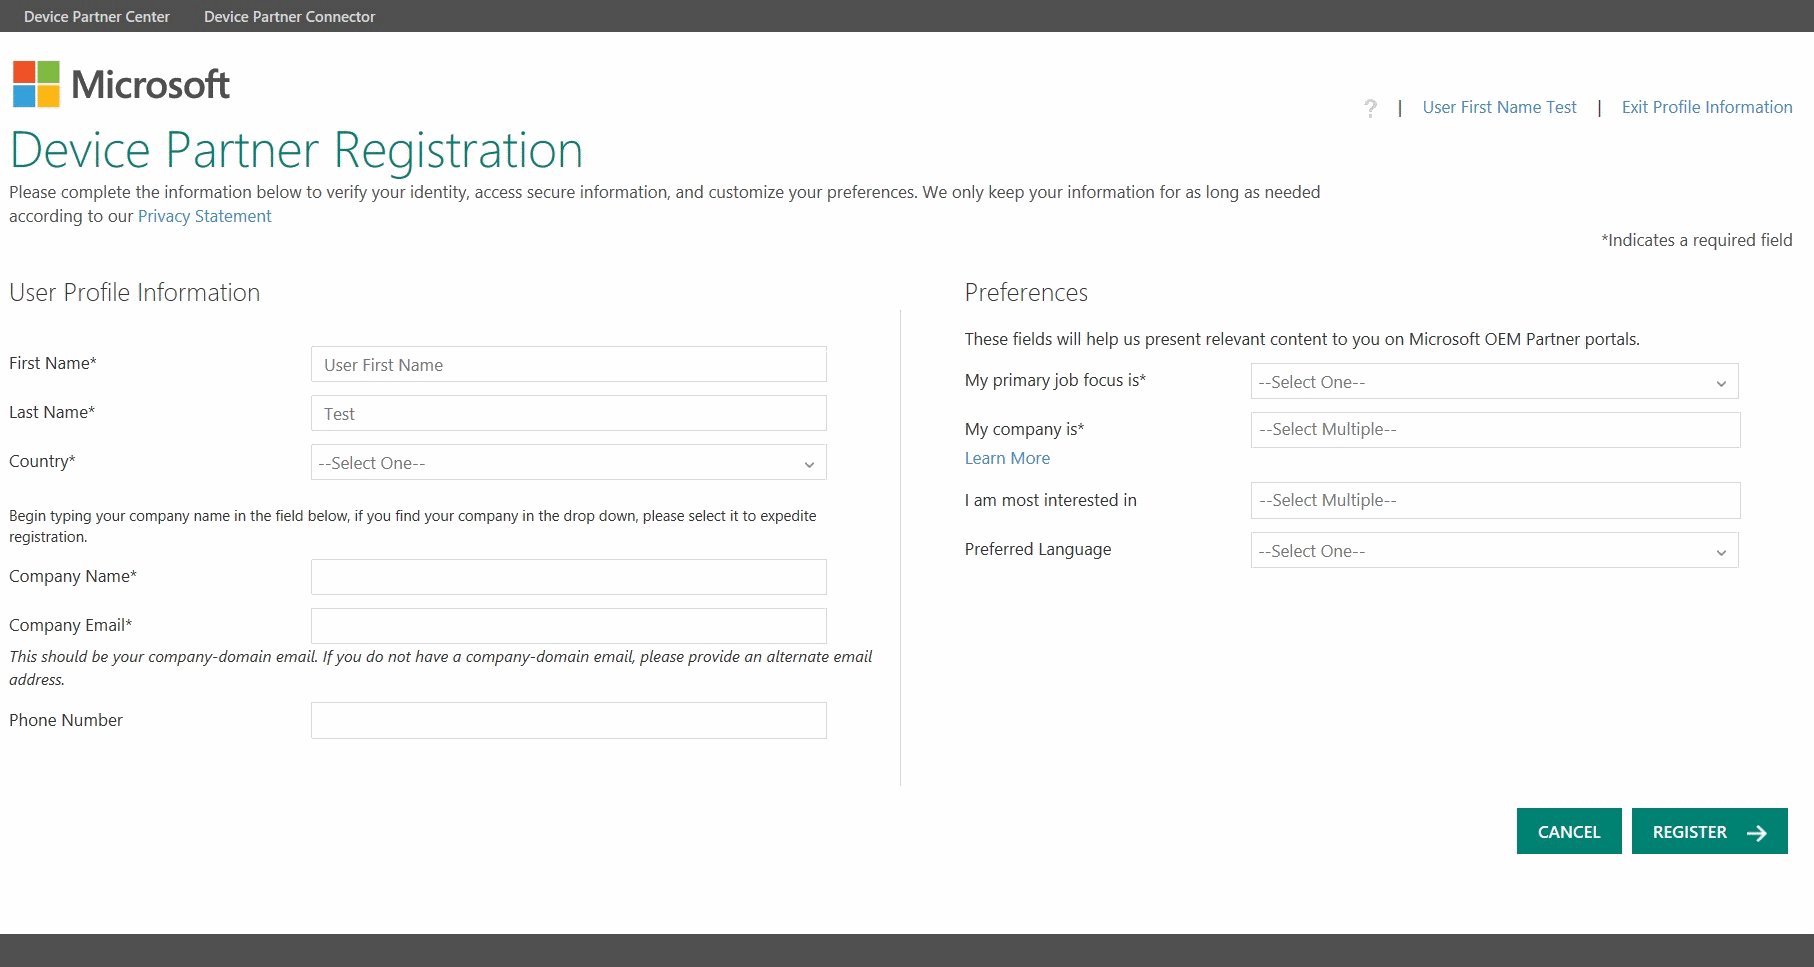 DPC Registration Page